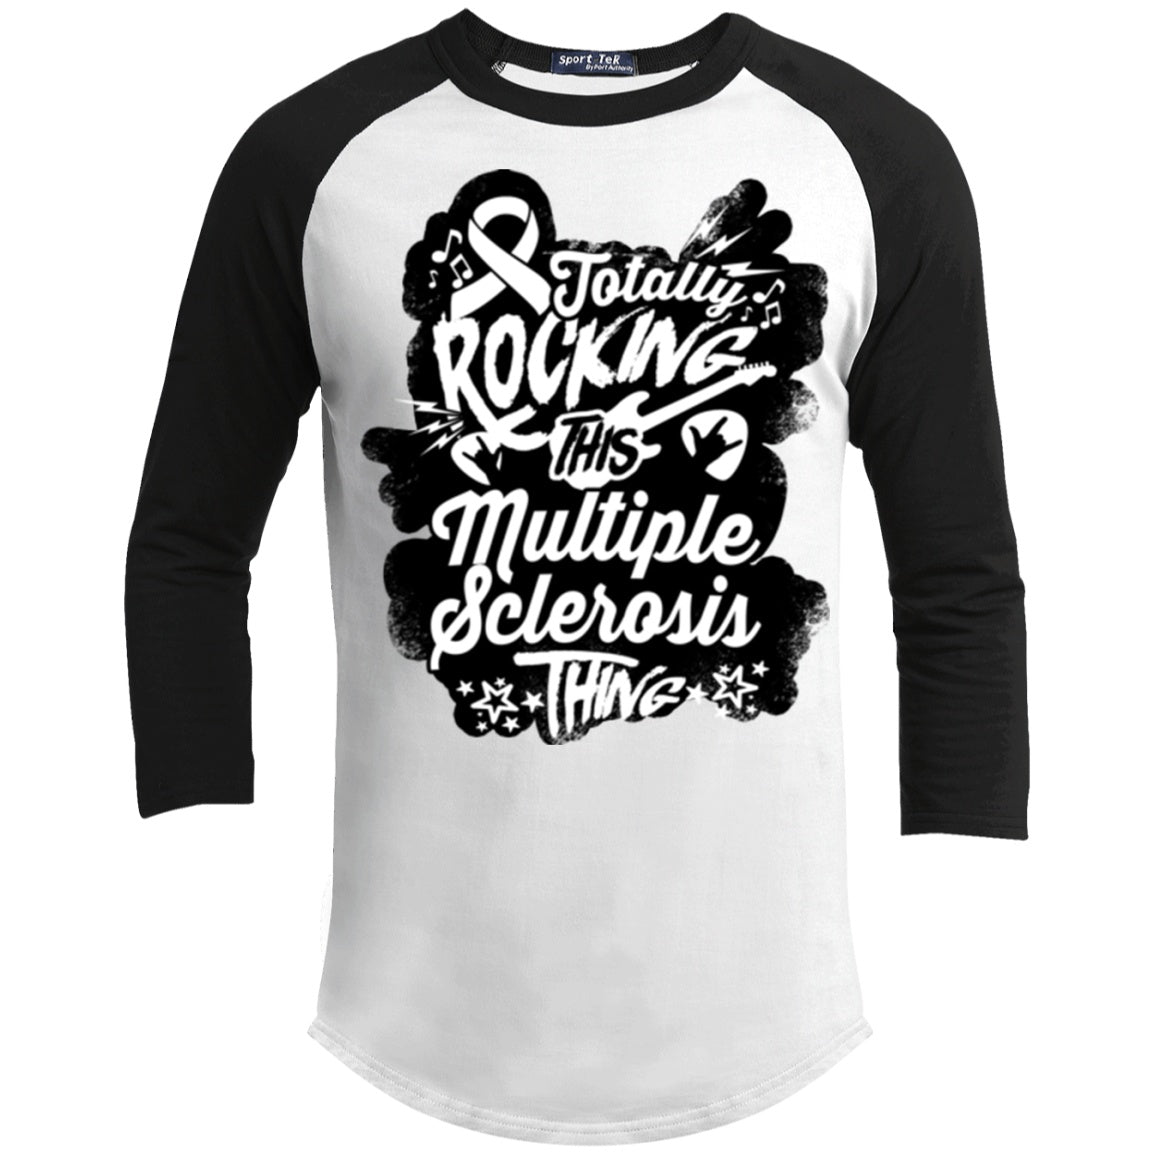 T-Shirts - Rocking Multiple Sclerosis Baseball Shirt